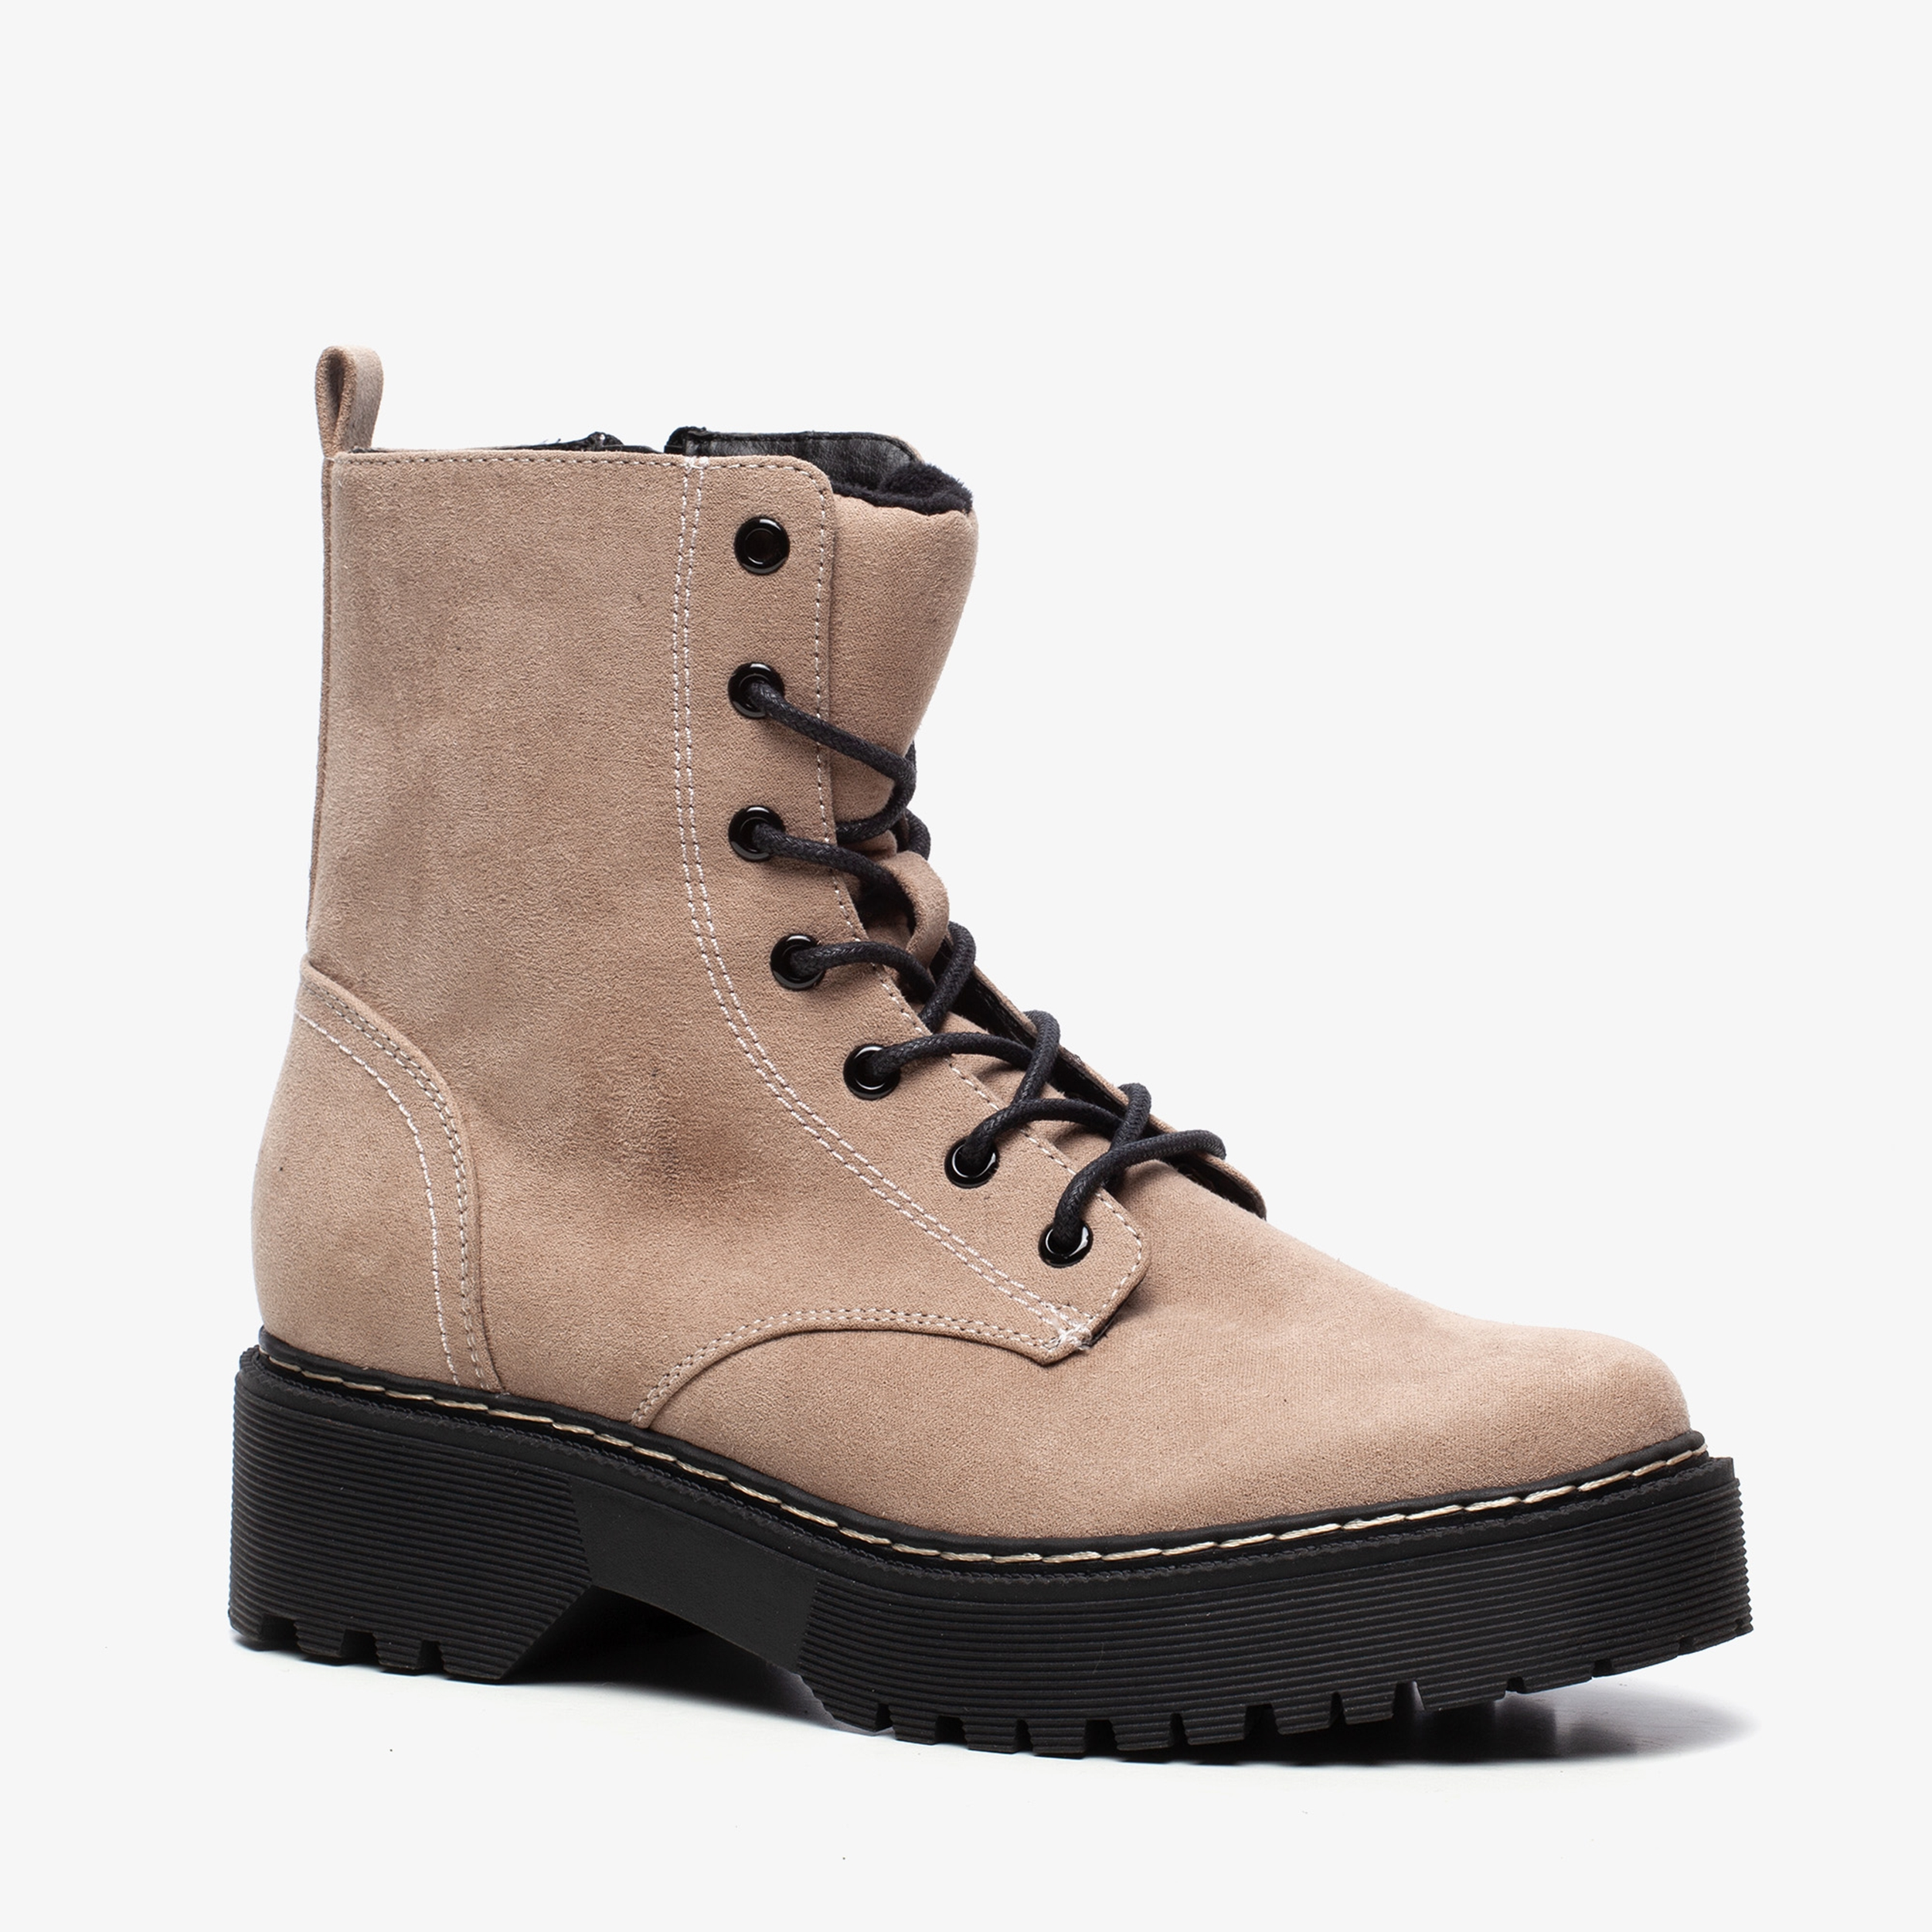 Sprox dames veterboots met plateauzool | Scapino.nl